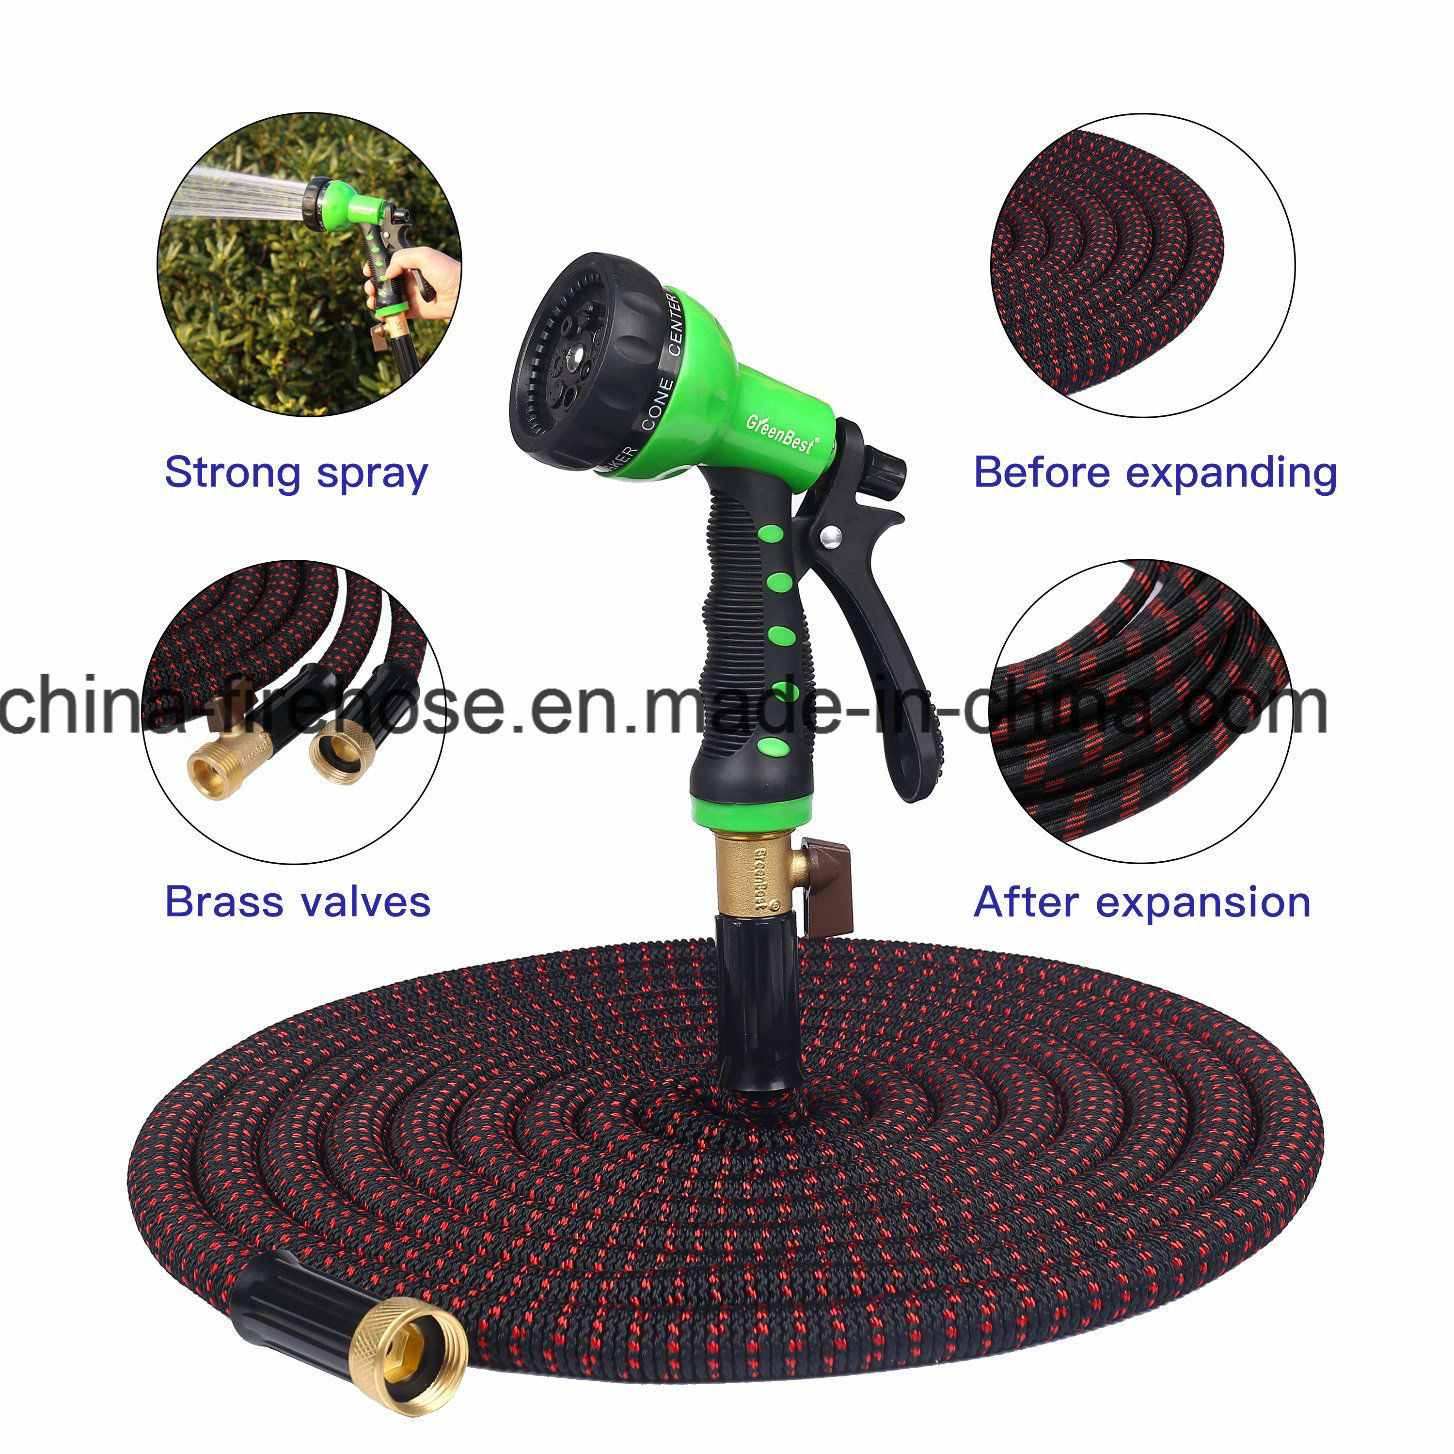 Newest 2017 50FT Expandable Garden Hose - Guaranteed by Best 12 Month Warranty Available- Strongest Brass Connections - Free Gift 7 Pattern Spray Nozzle - No Ki